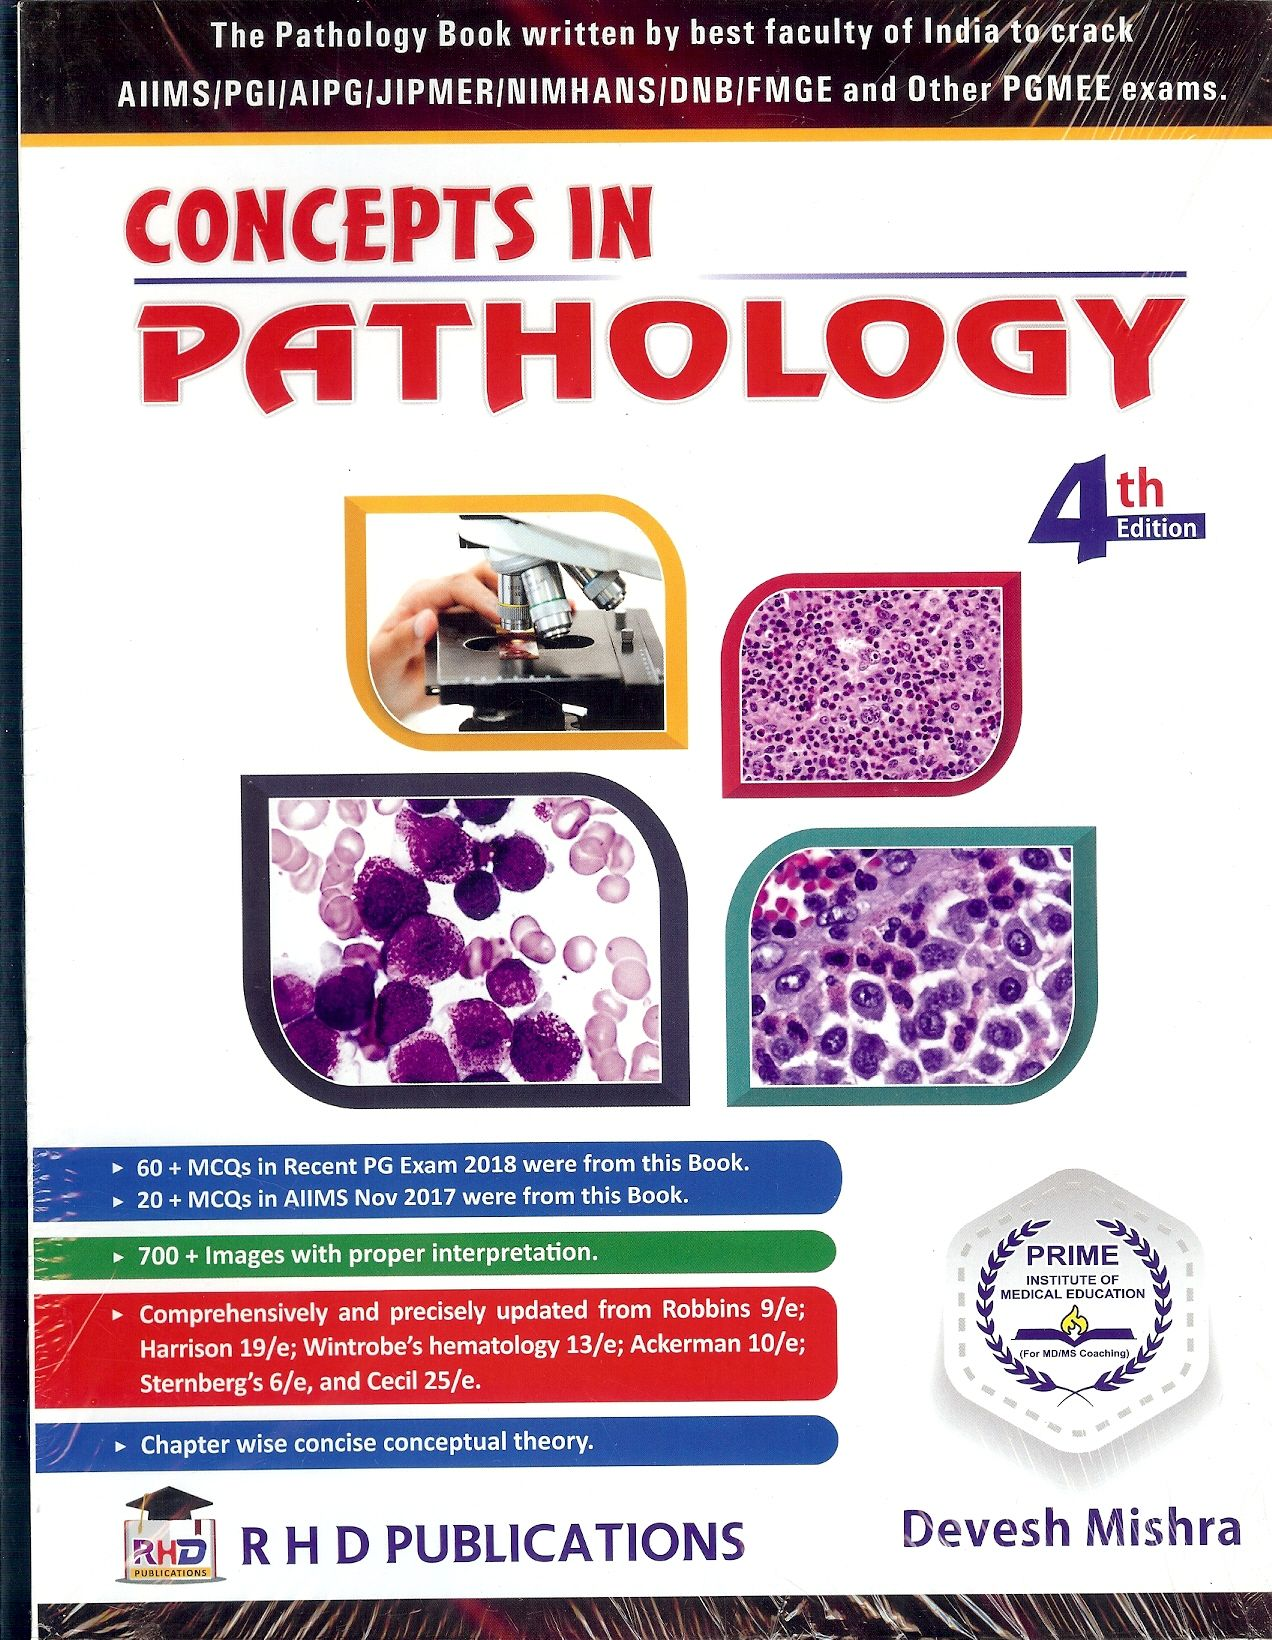 Concepts in Pathology by Devesh Mishra | Medical/ Dental PG